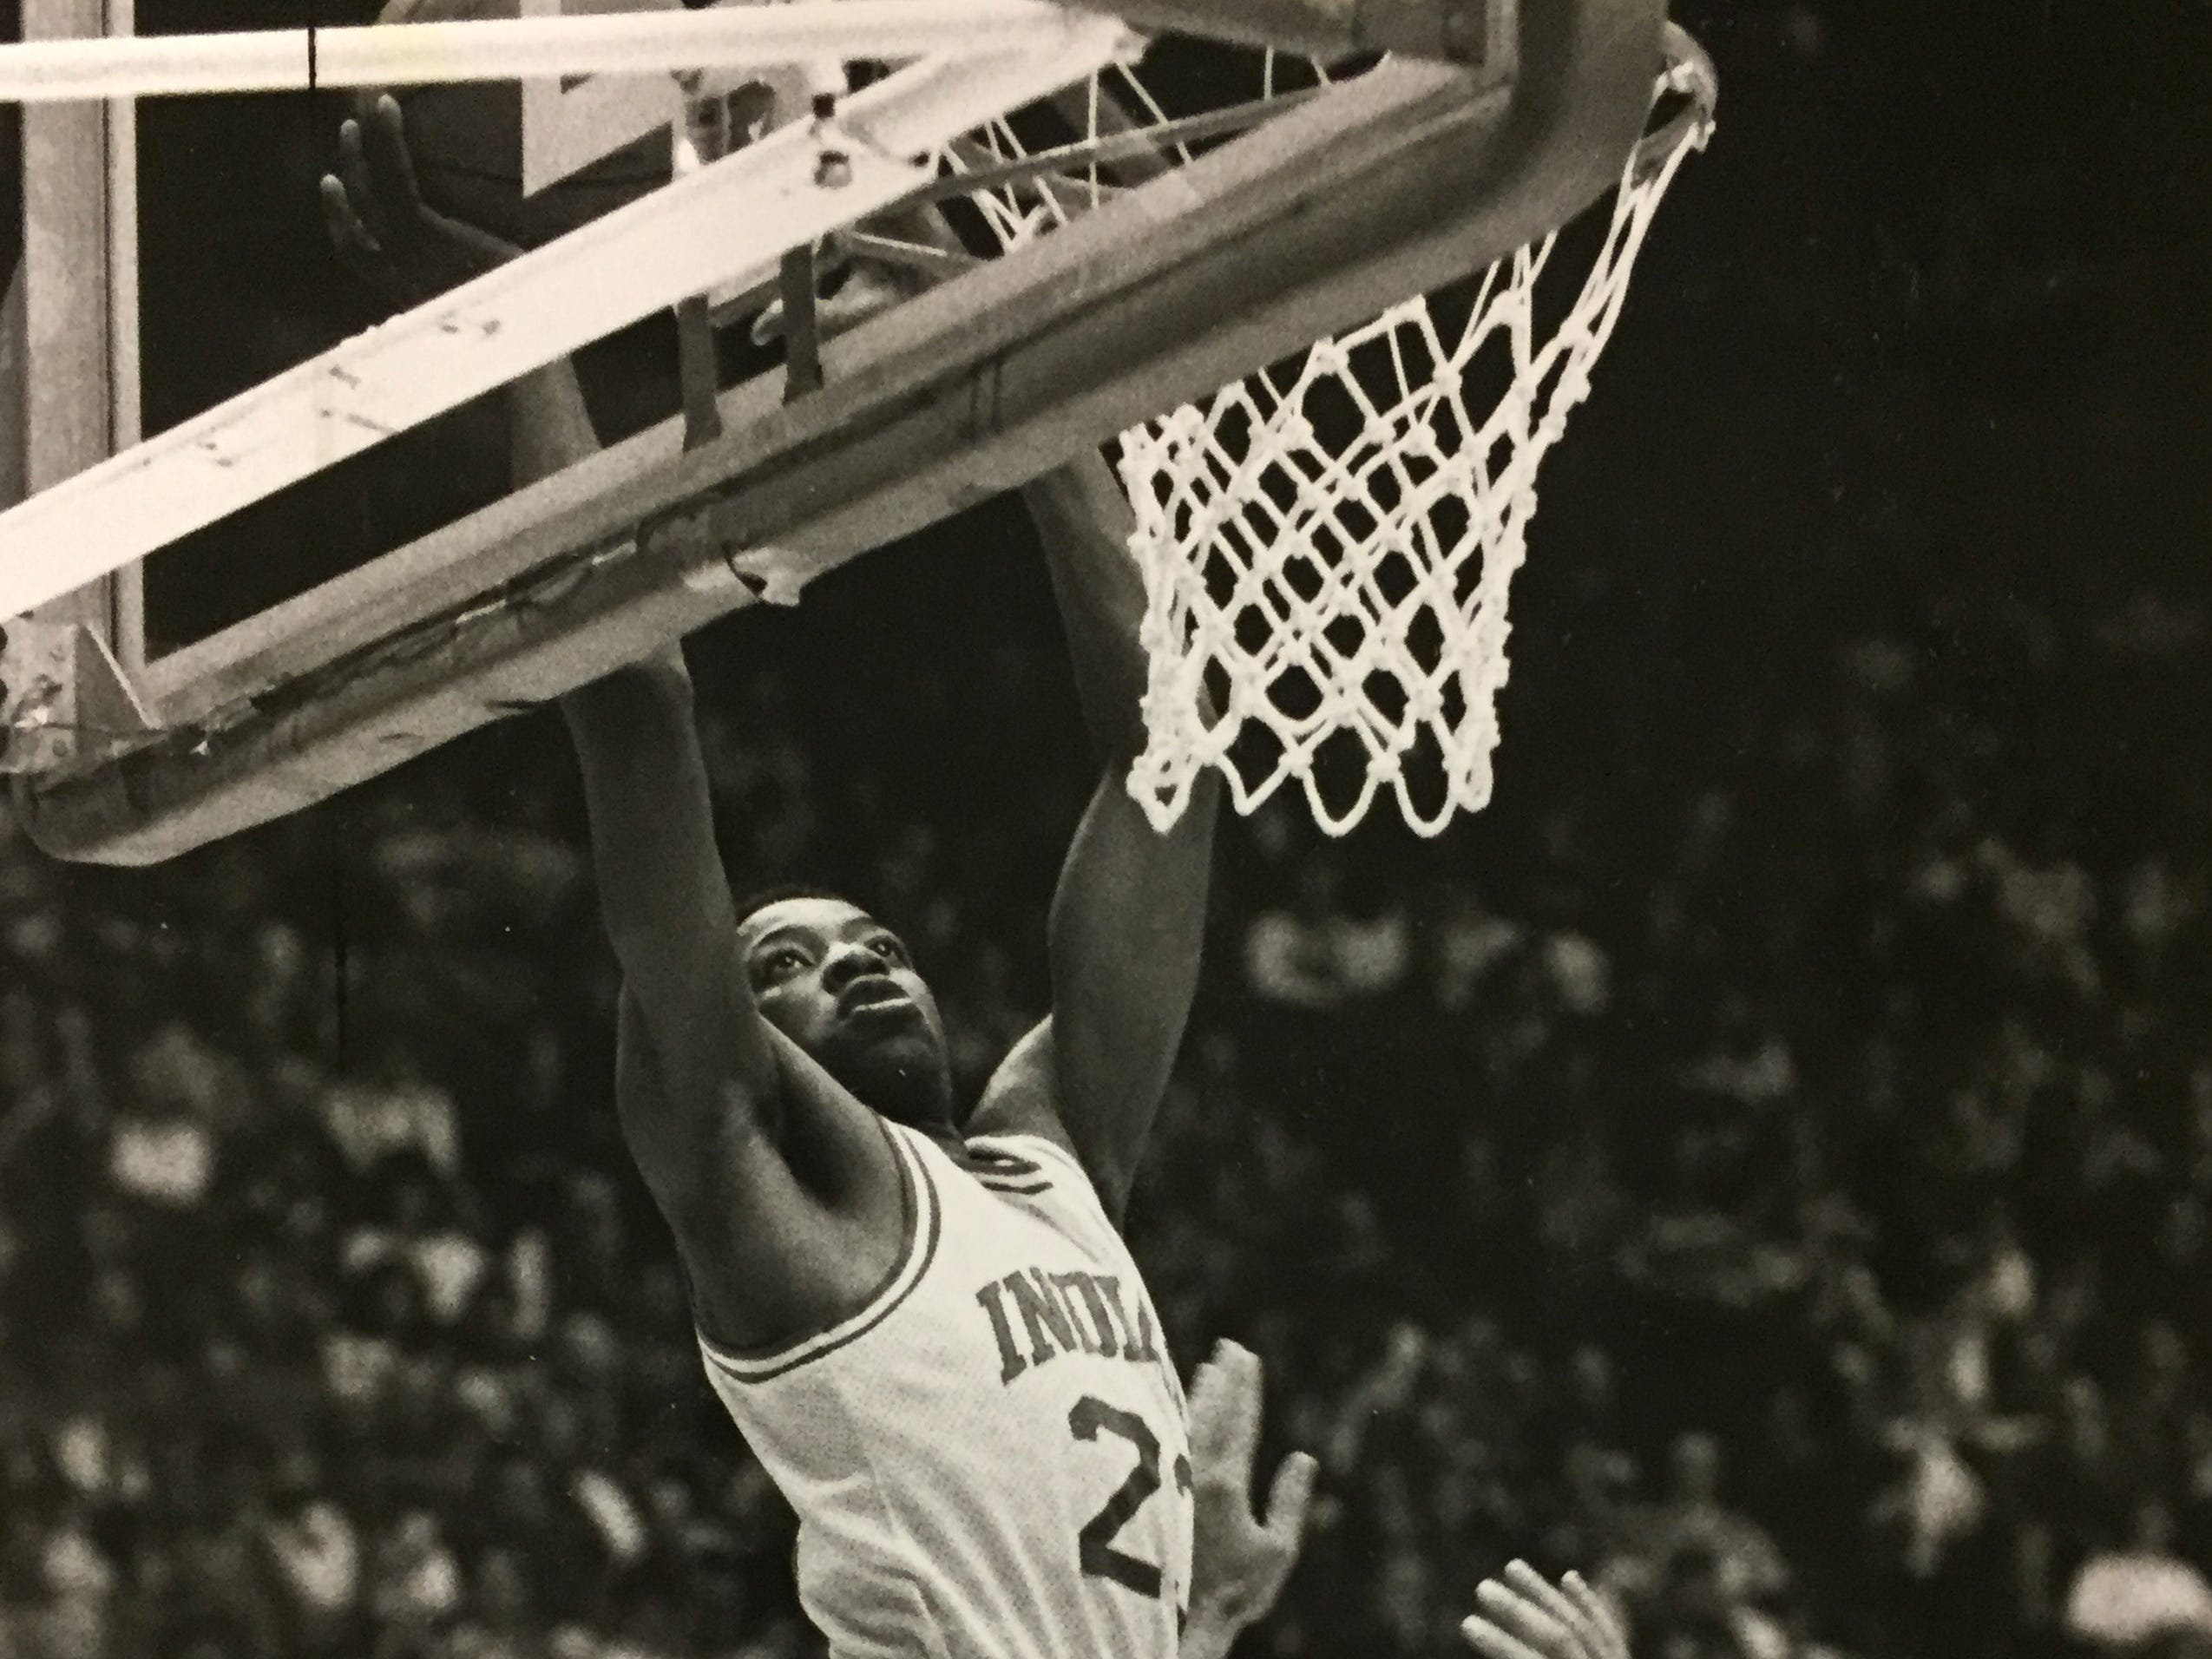 Keith Smart scores on an alley-oop play over John Anderson of Ohio State, March 5, 1988.